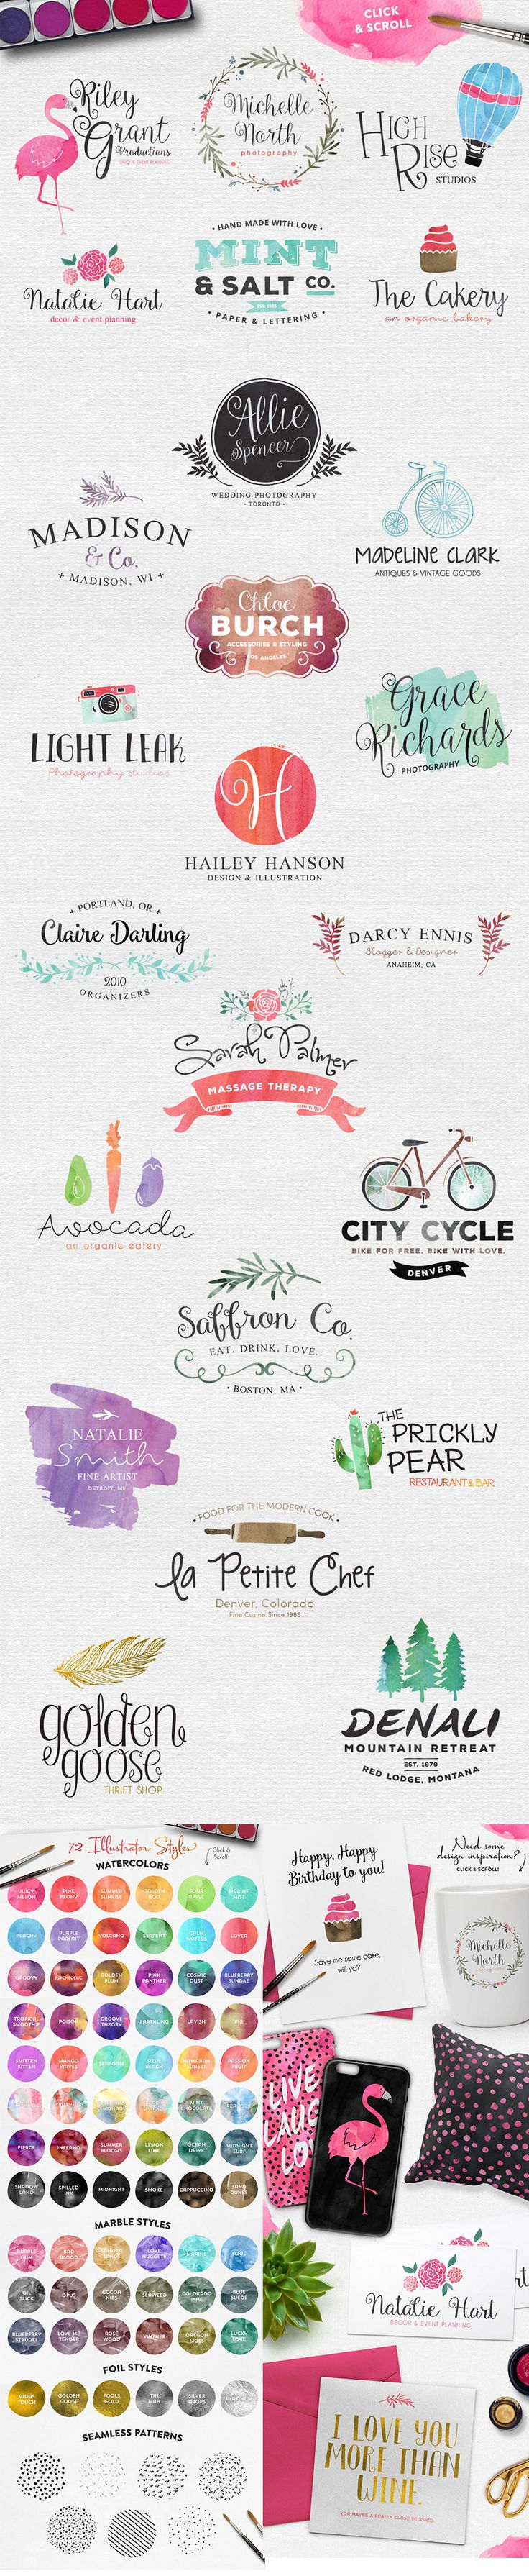 Make Media Co. Water Color The Inspirational Artistic Design Bundle